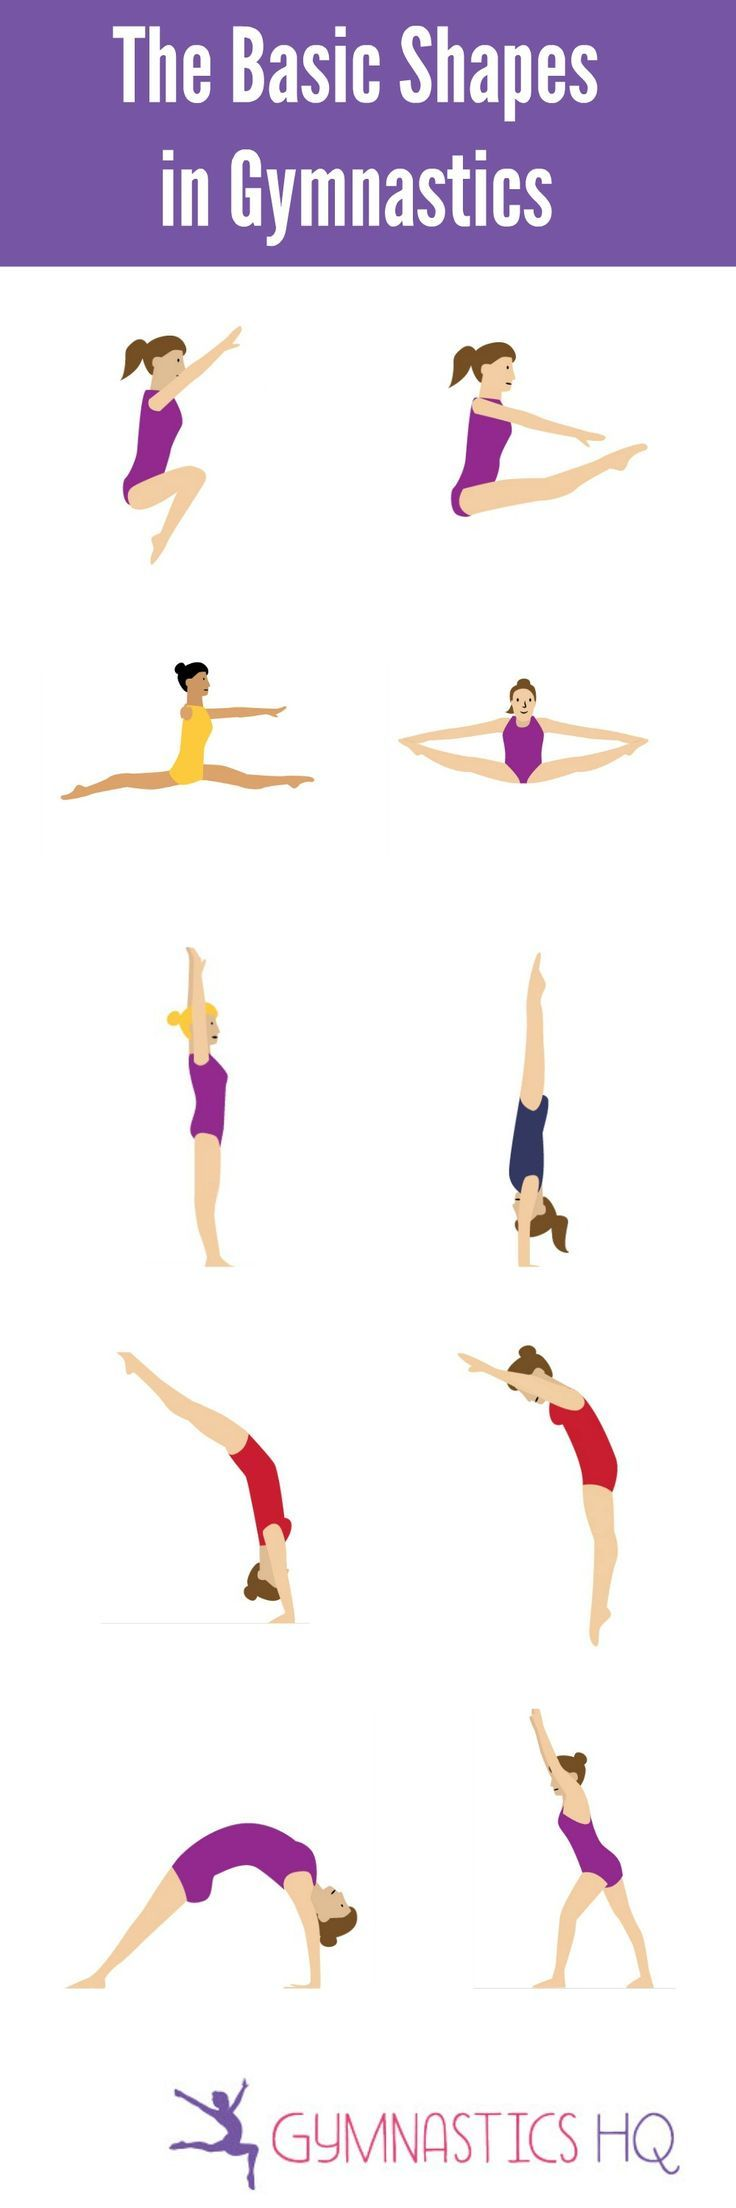 The Basic Shapes in Gymnastics and Why they are Important